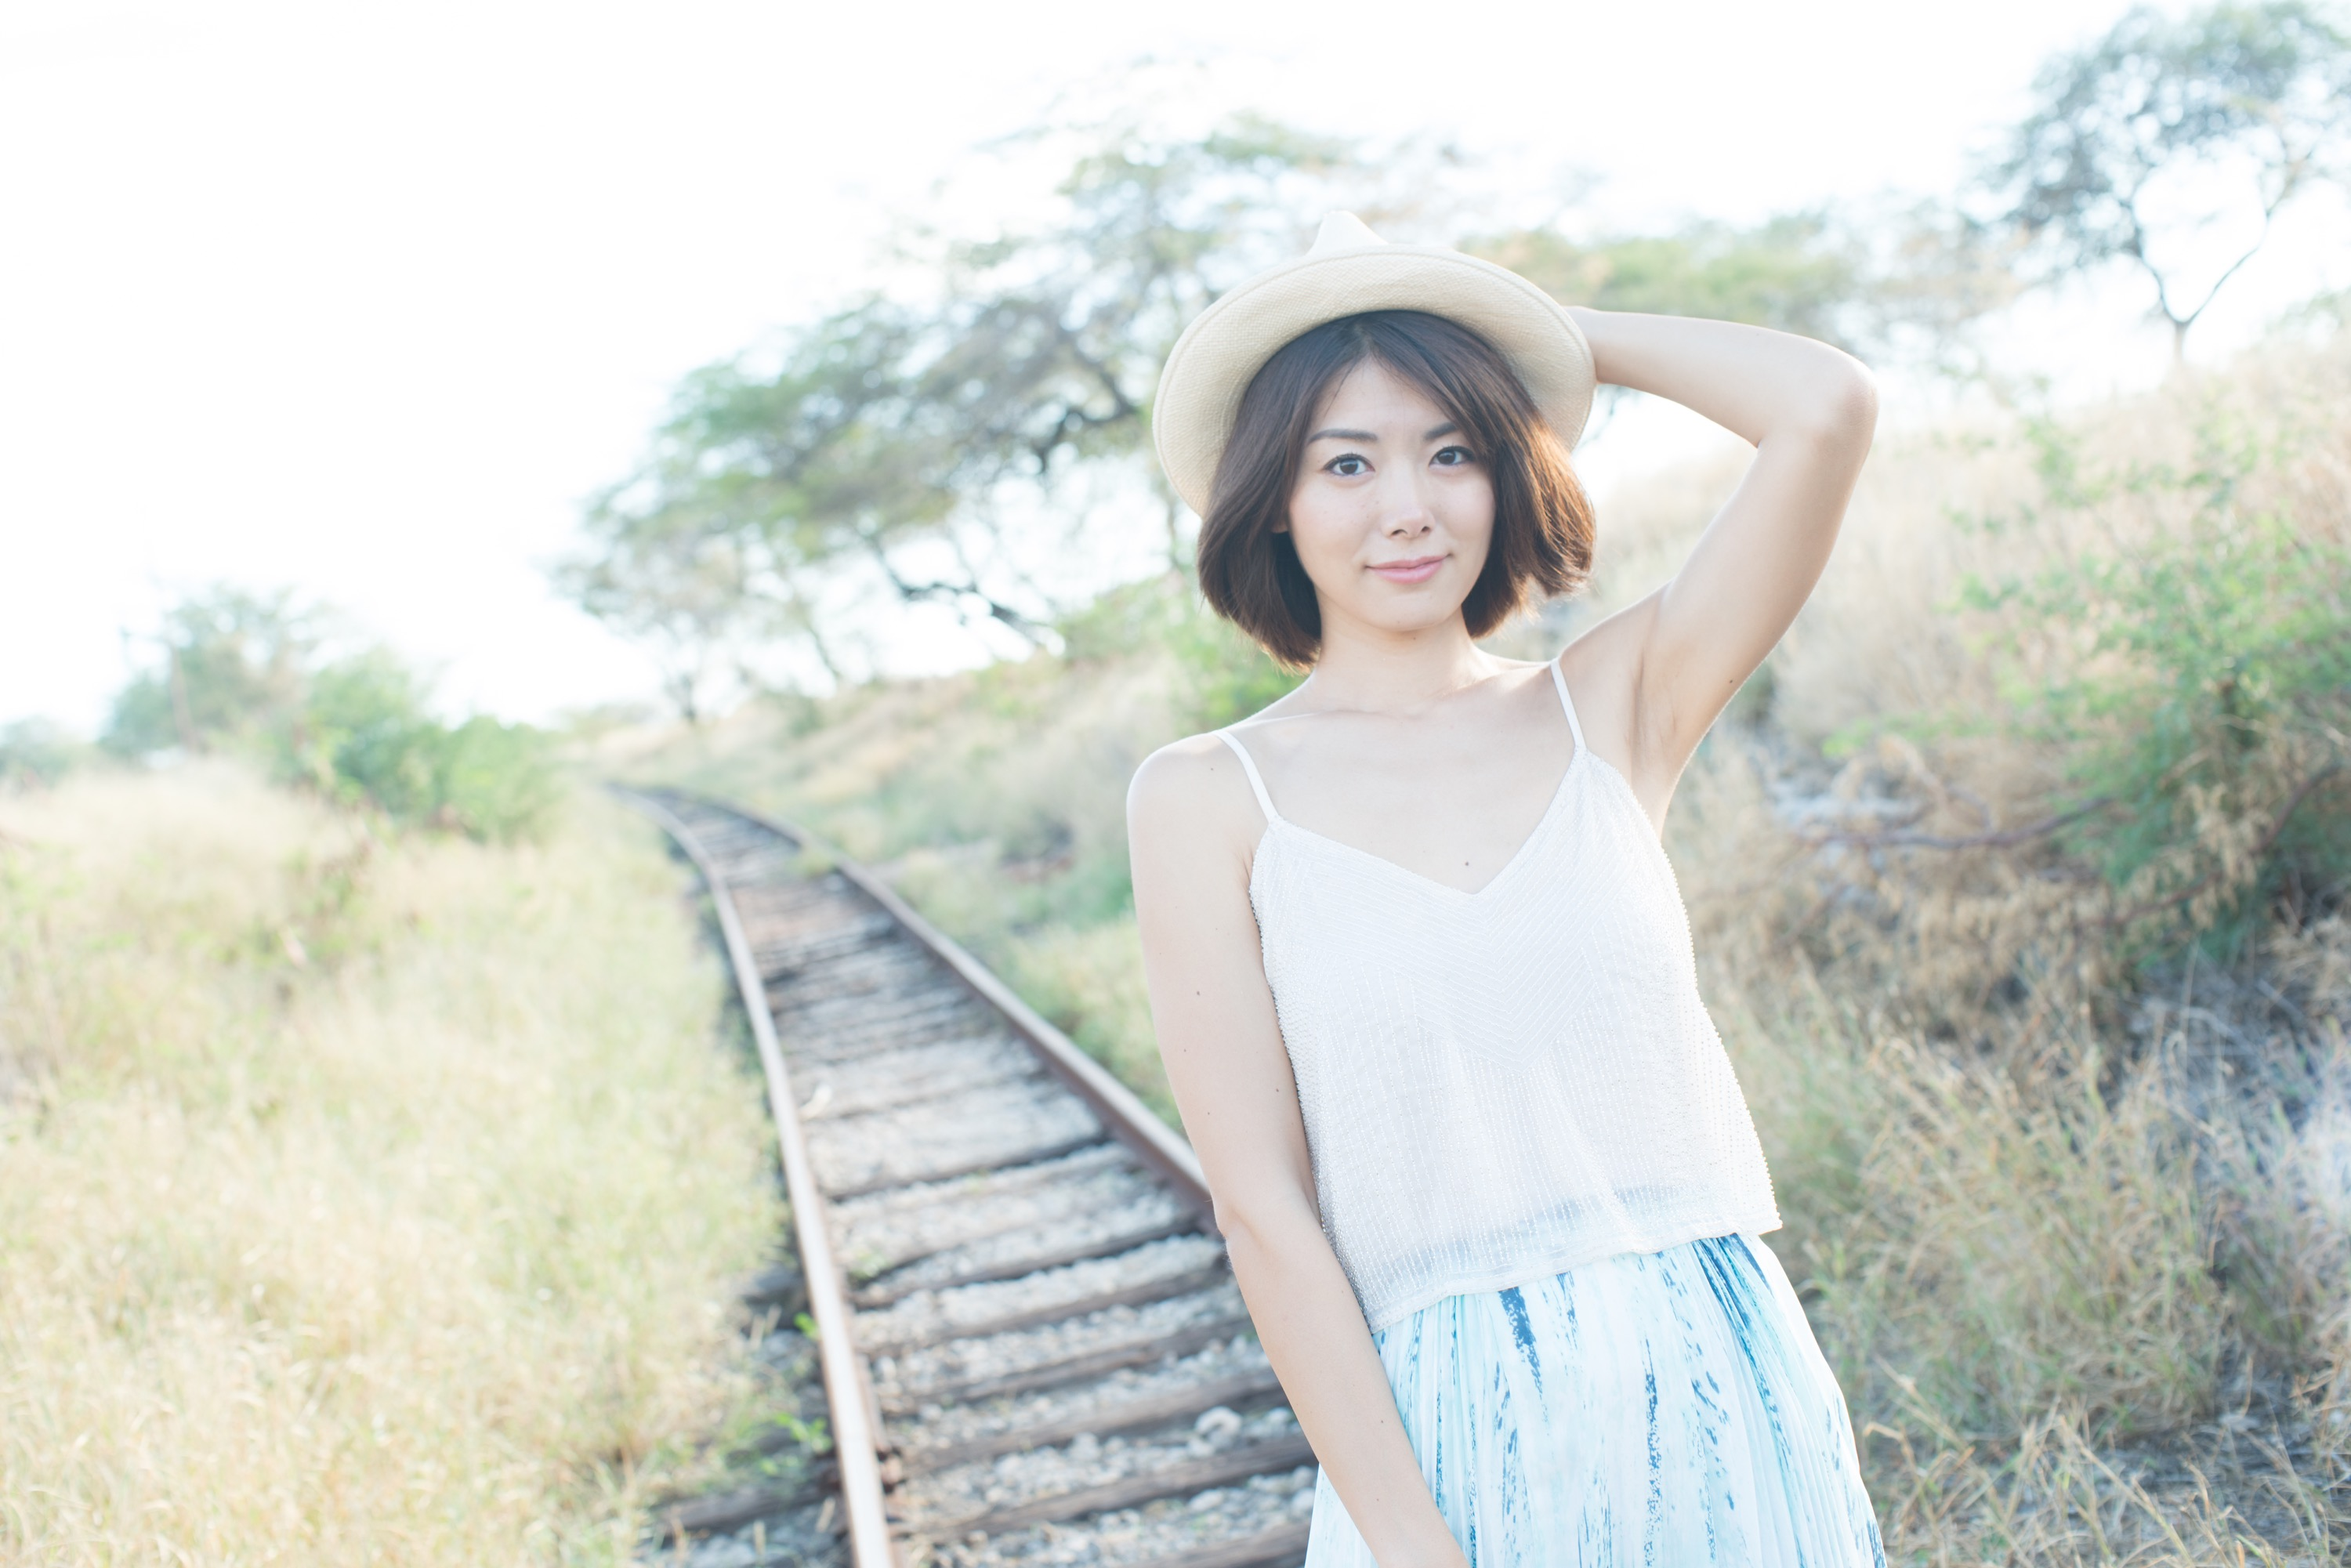 Eri_50mmf1.2-41th_